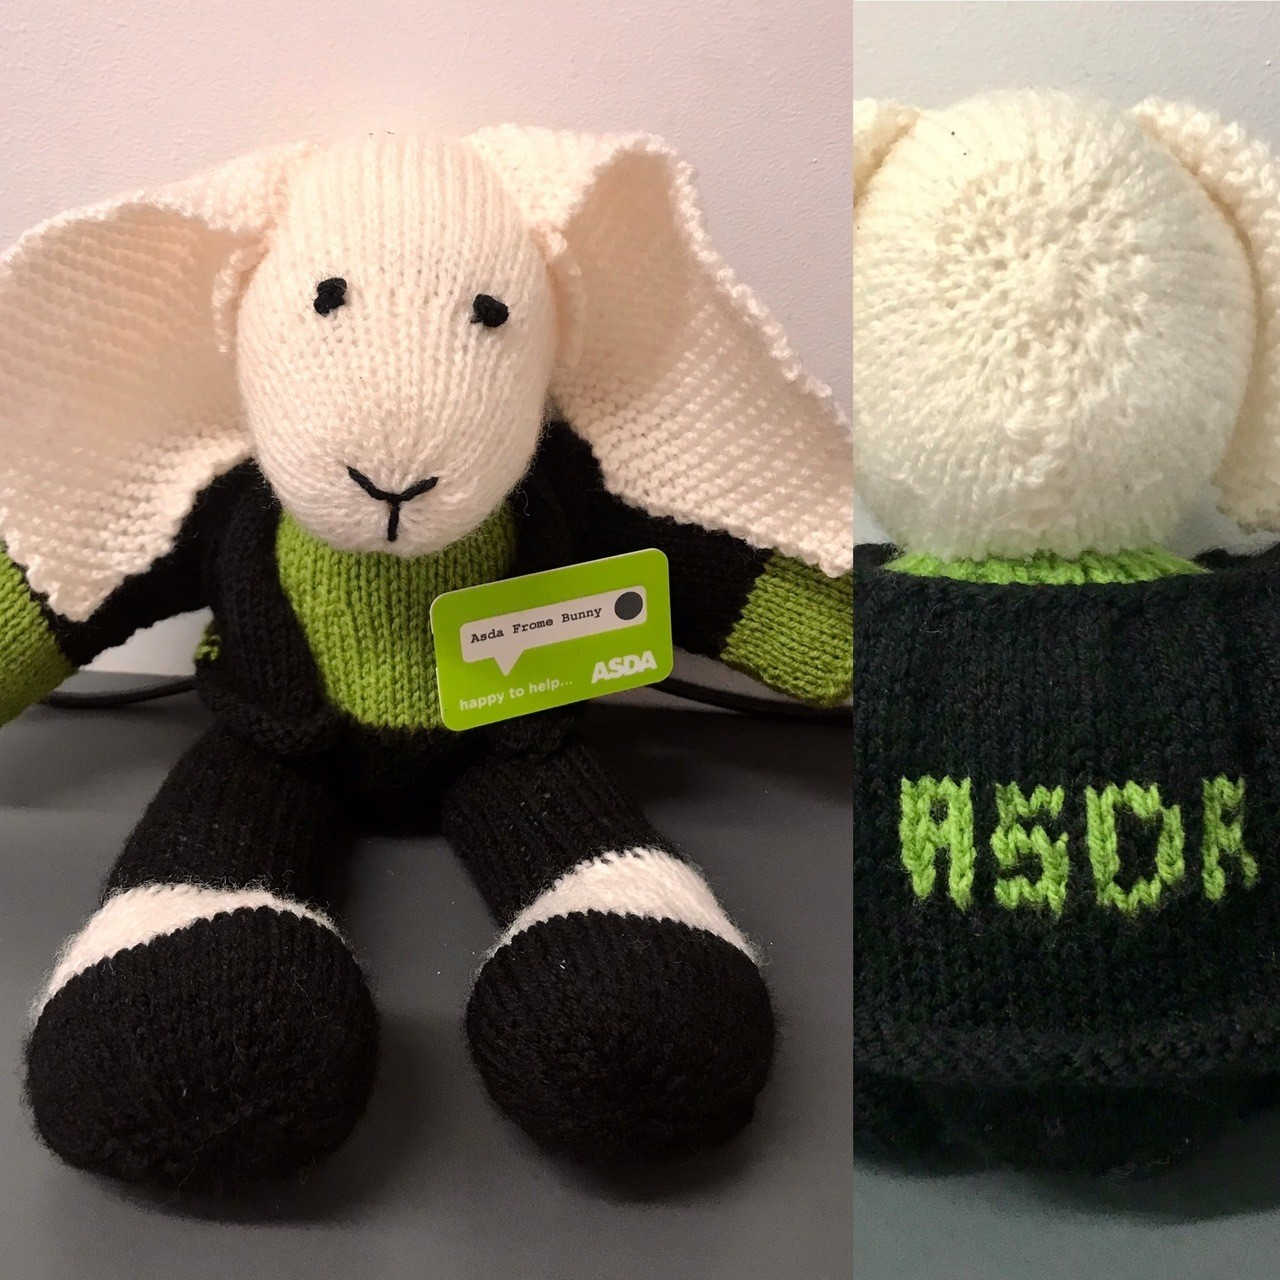 New store mascot | Asda Frome